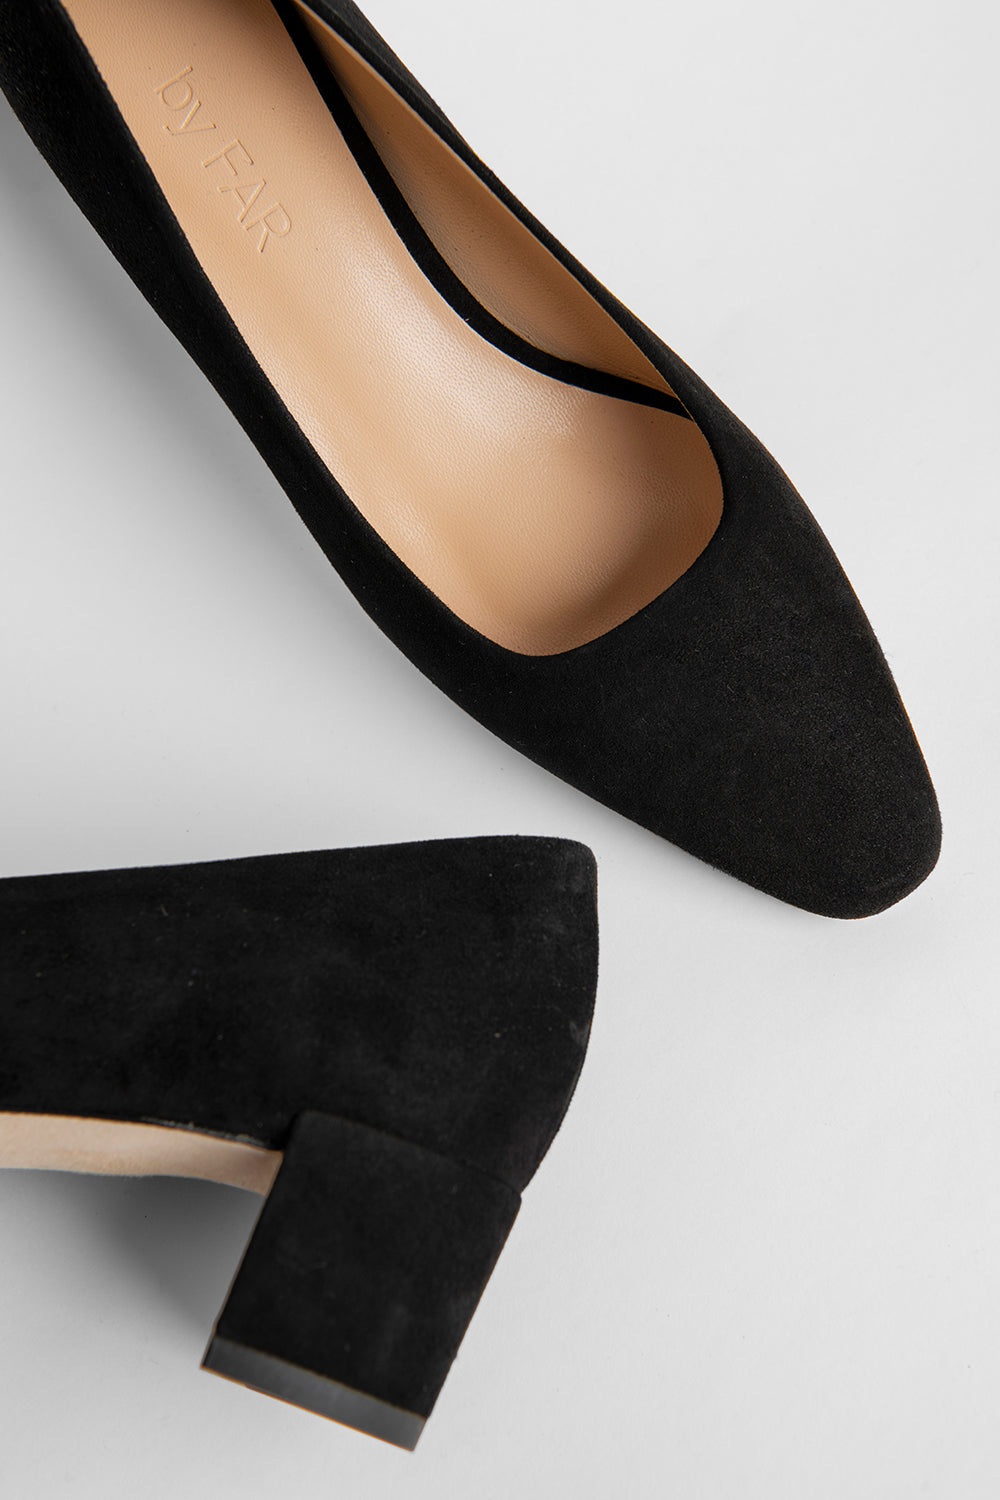 Andrea Black Suede Leather